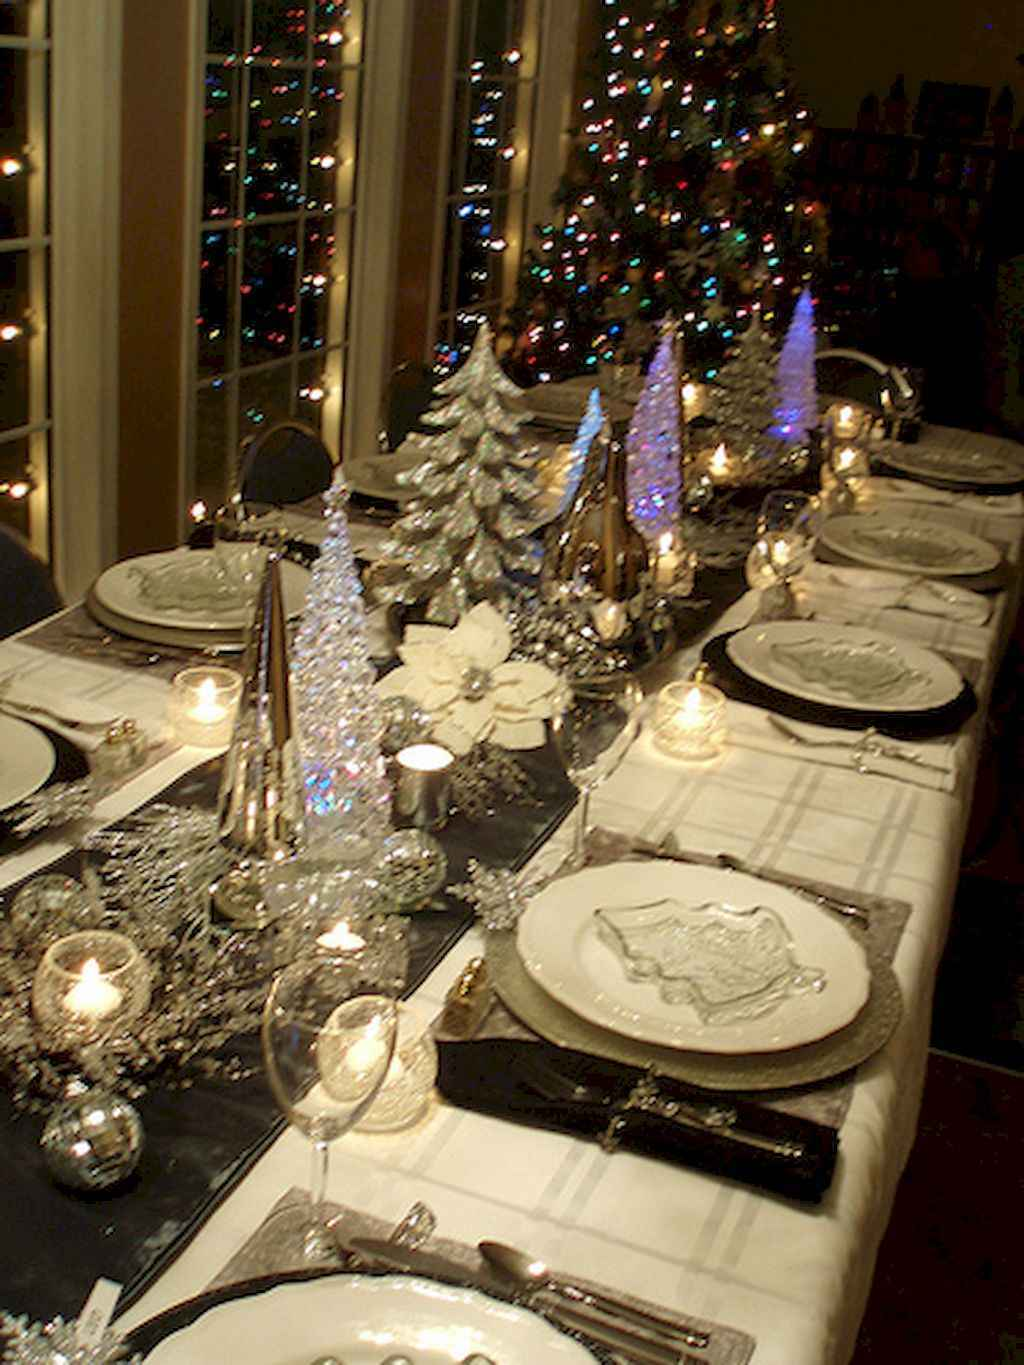 40 Awesome Christmas Dinner Table Decorations Ideas (2